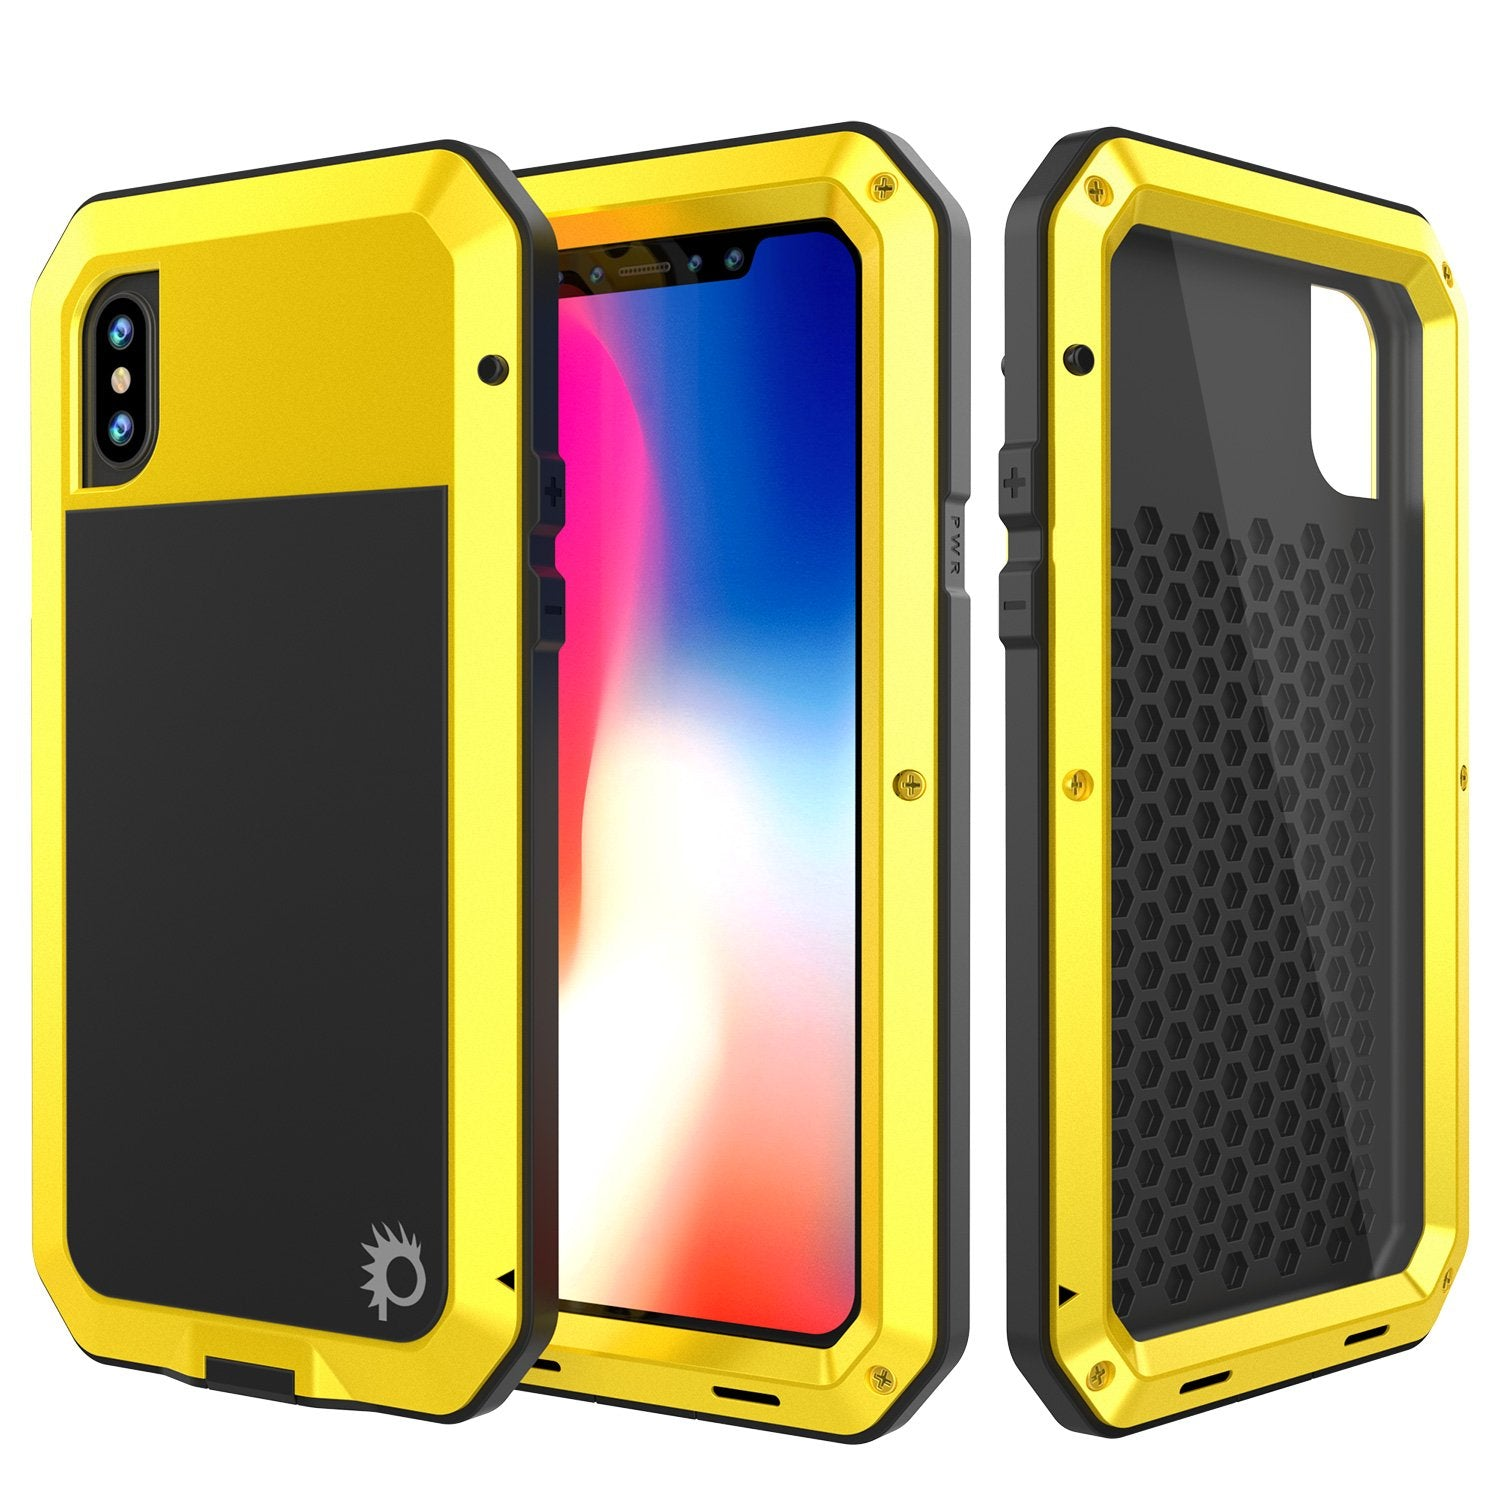 iPhone X Metal Case, Heavy Duty Military Grade Rugged Armor Case, Neon